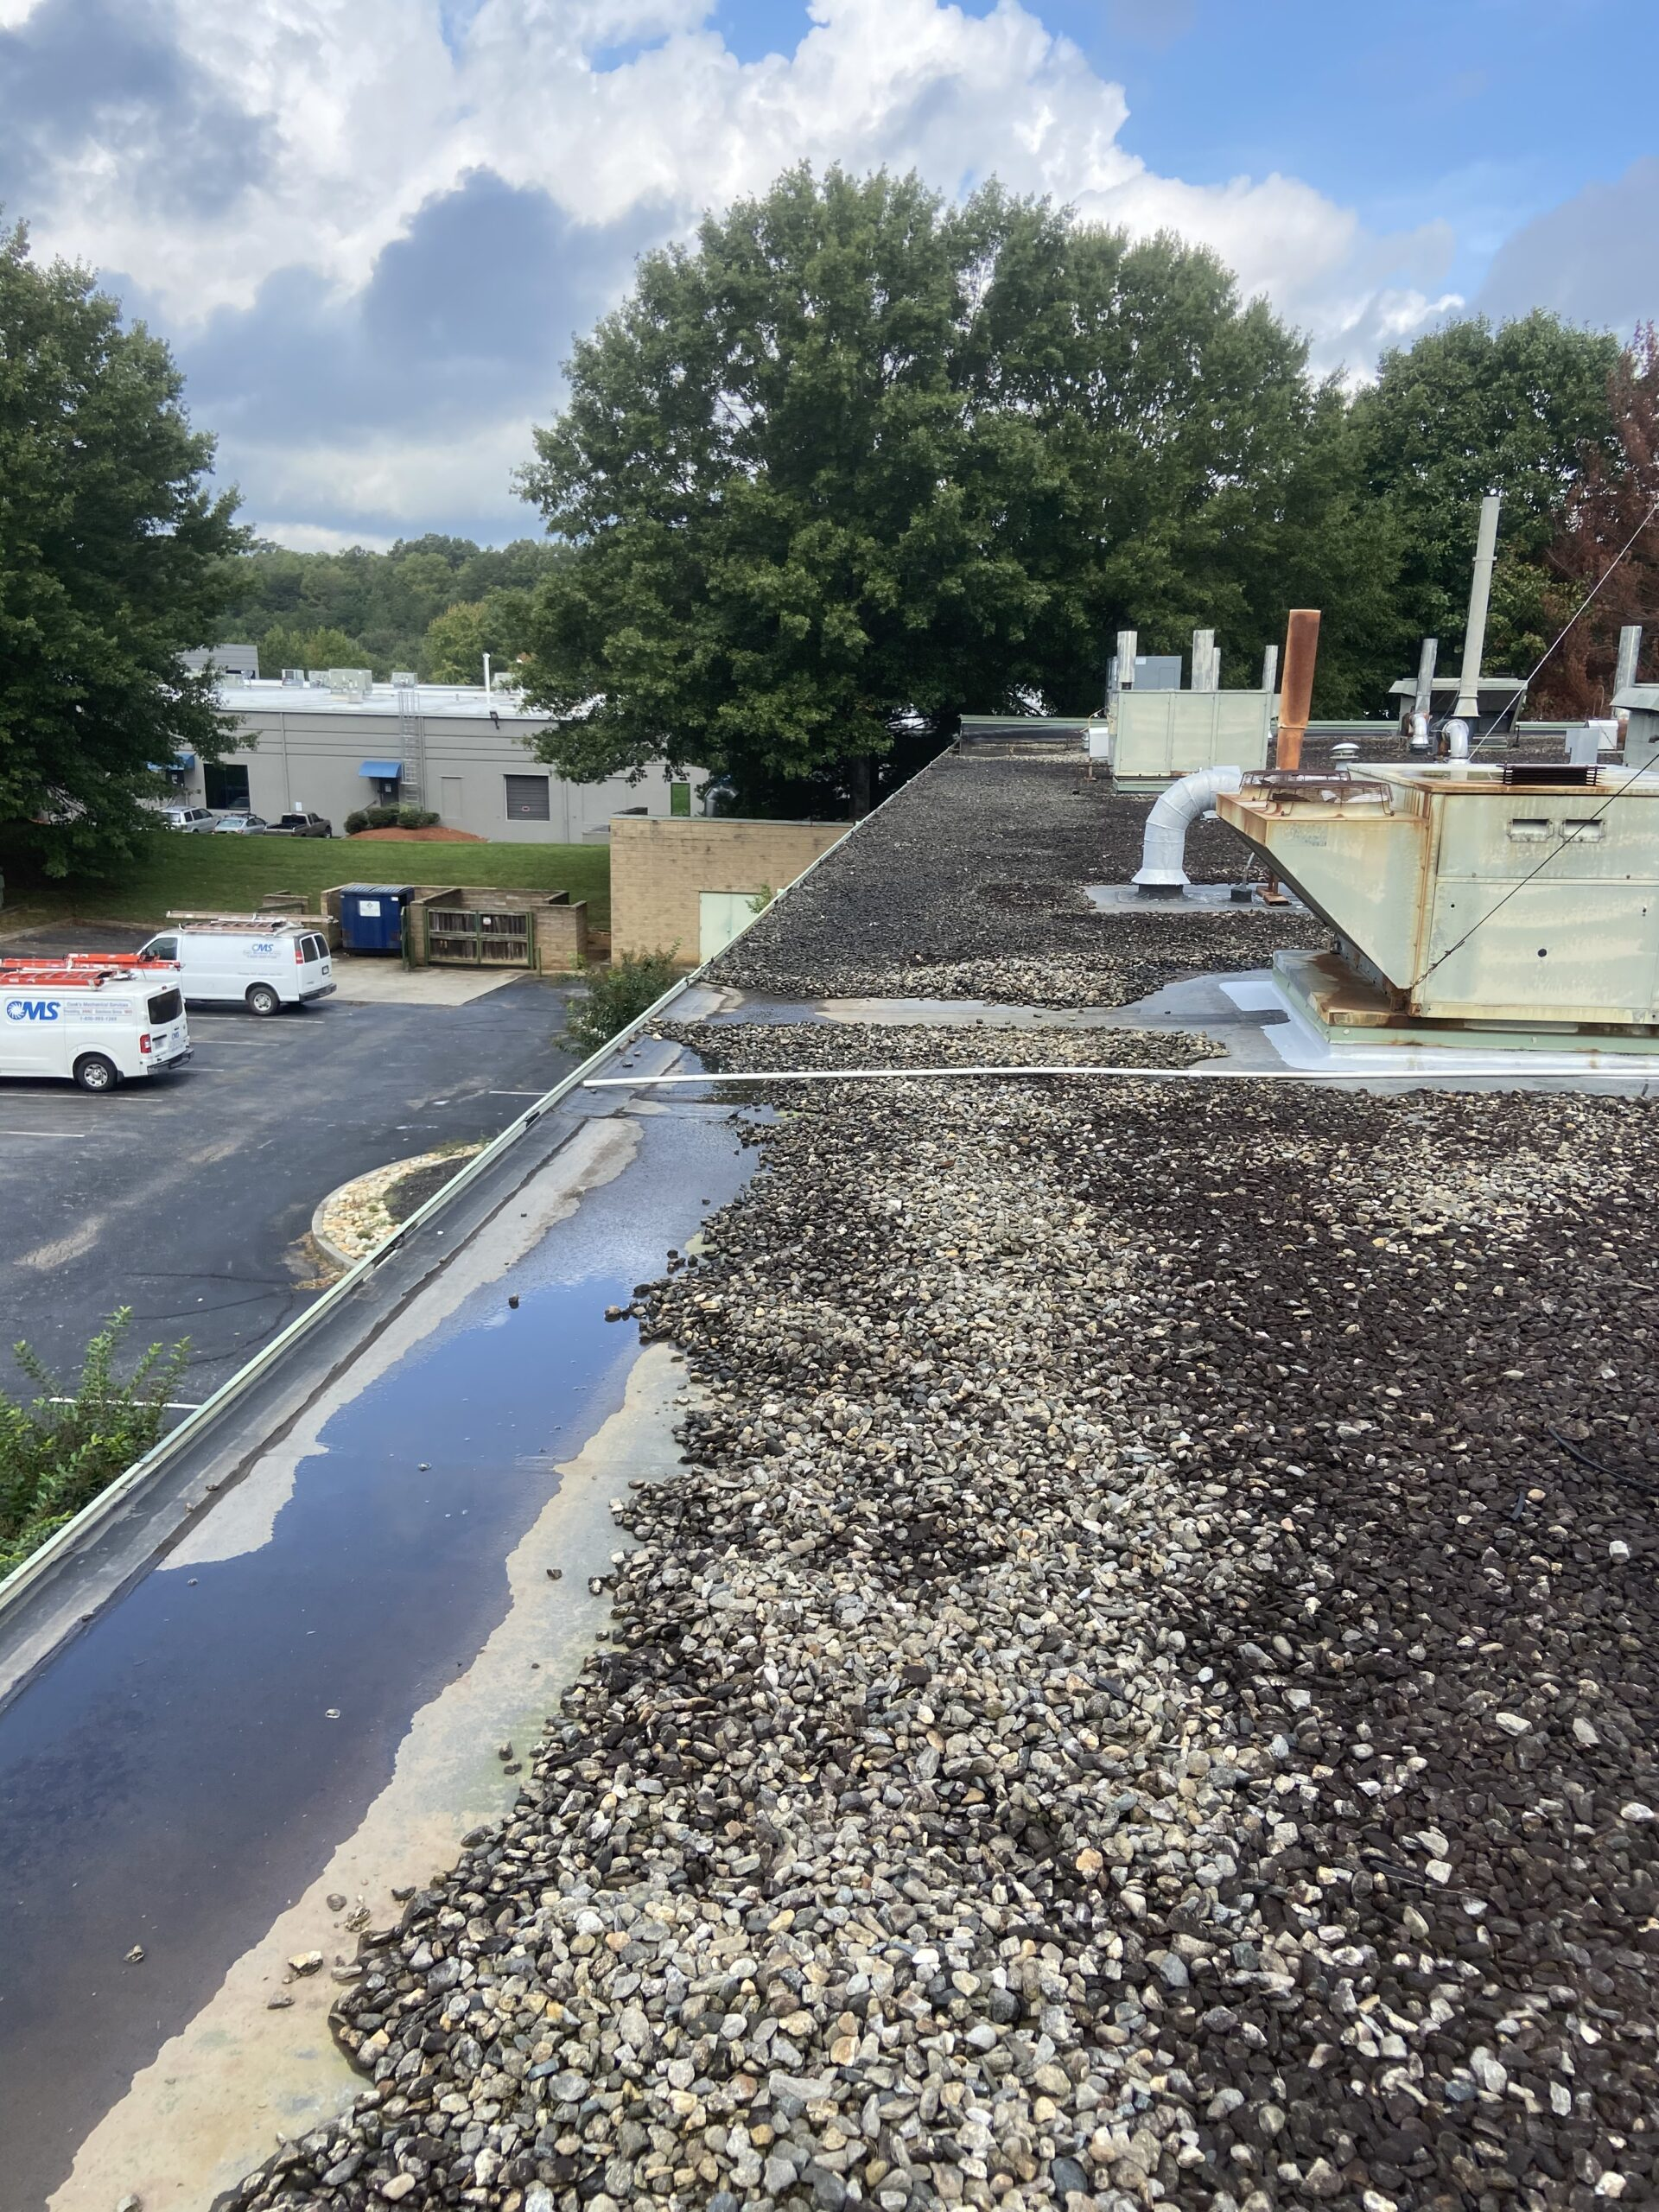 Water is standing on this commercial roof and will cause roof leaks